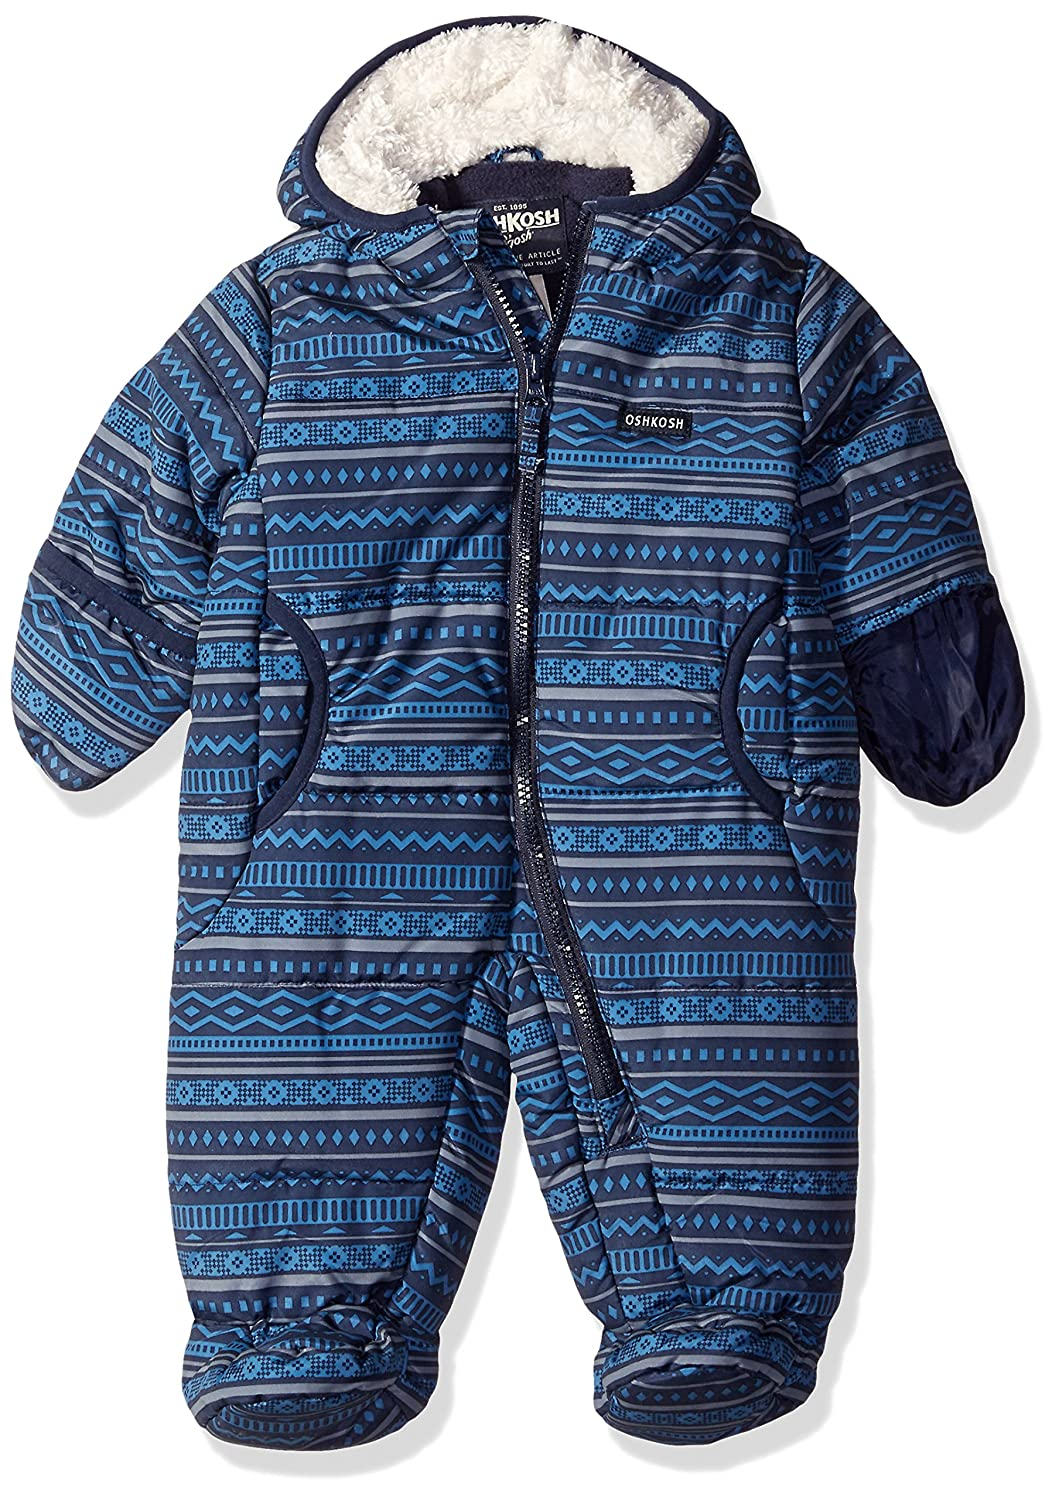 OshKosh baby-boys Baby Heavyweight Pram Suit Osh Kosh (Amerex) Children' s Apparel B216H95